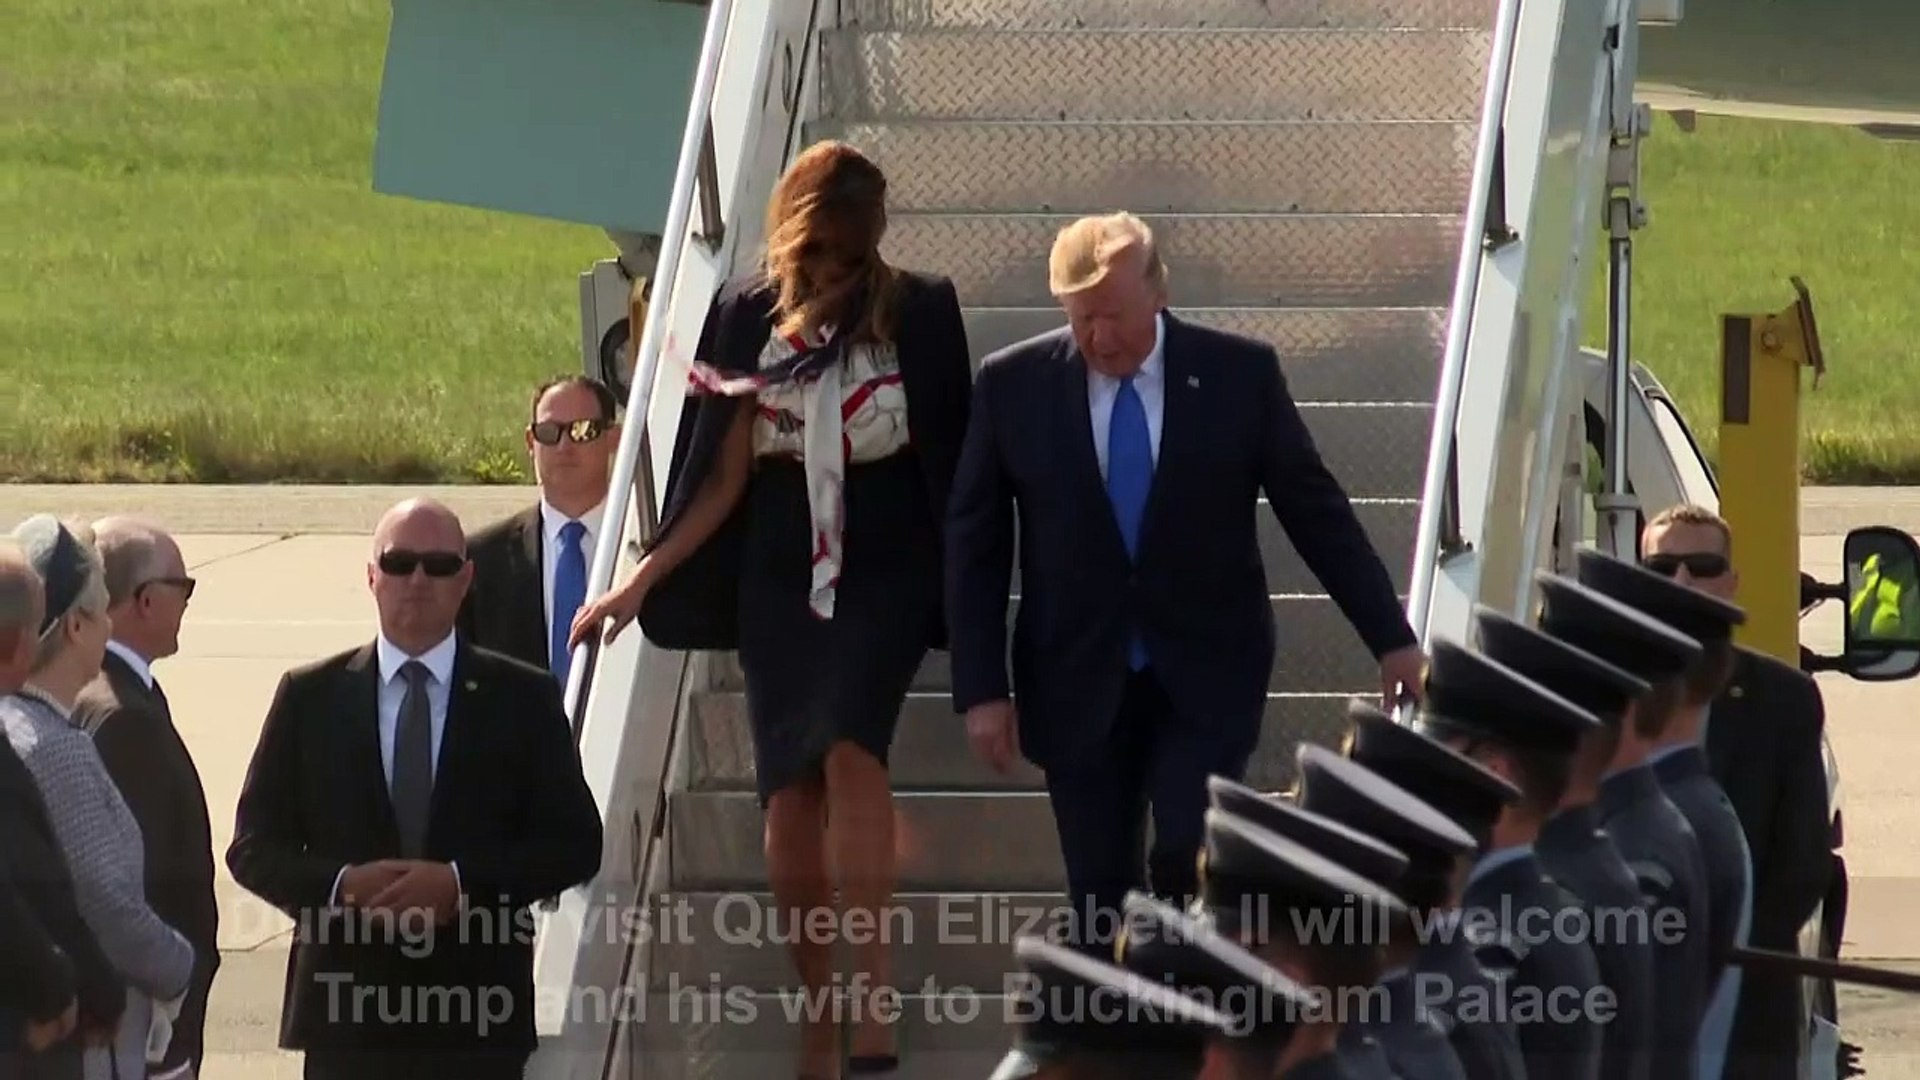 President Trump arrives in the UK on state visit